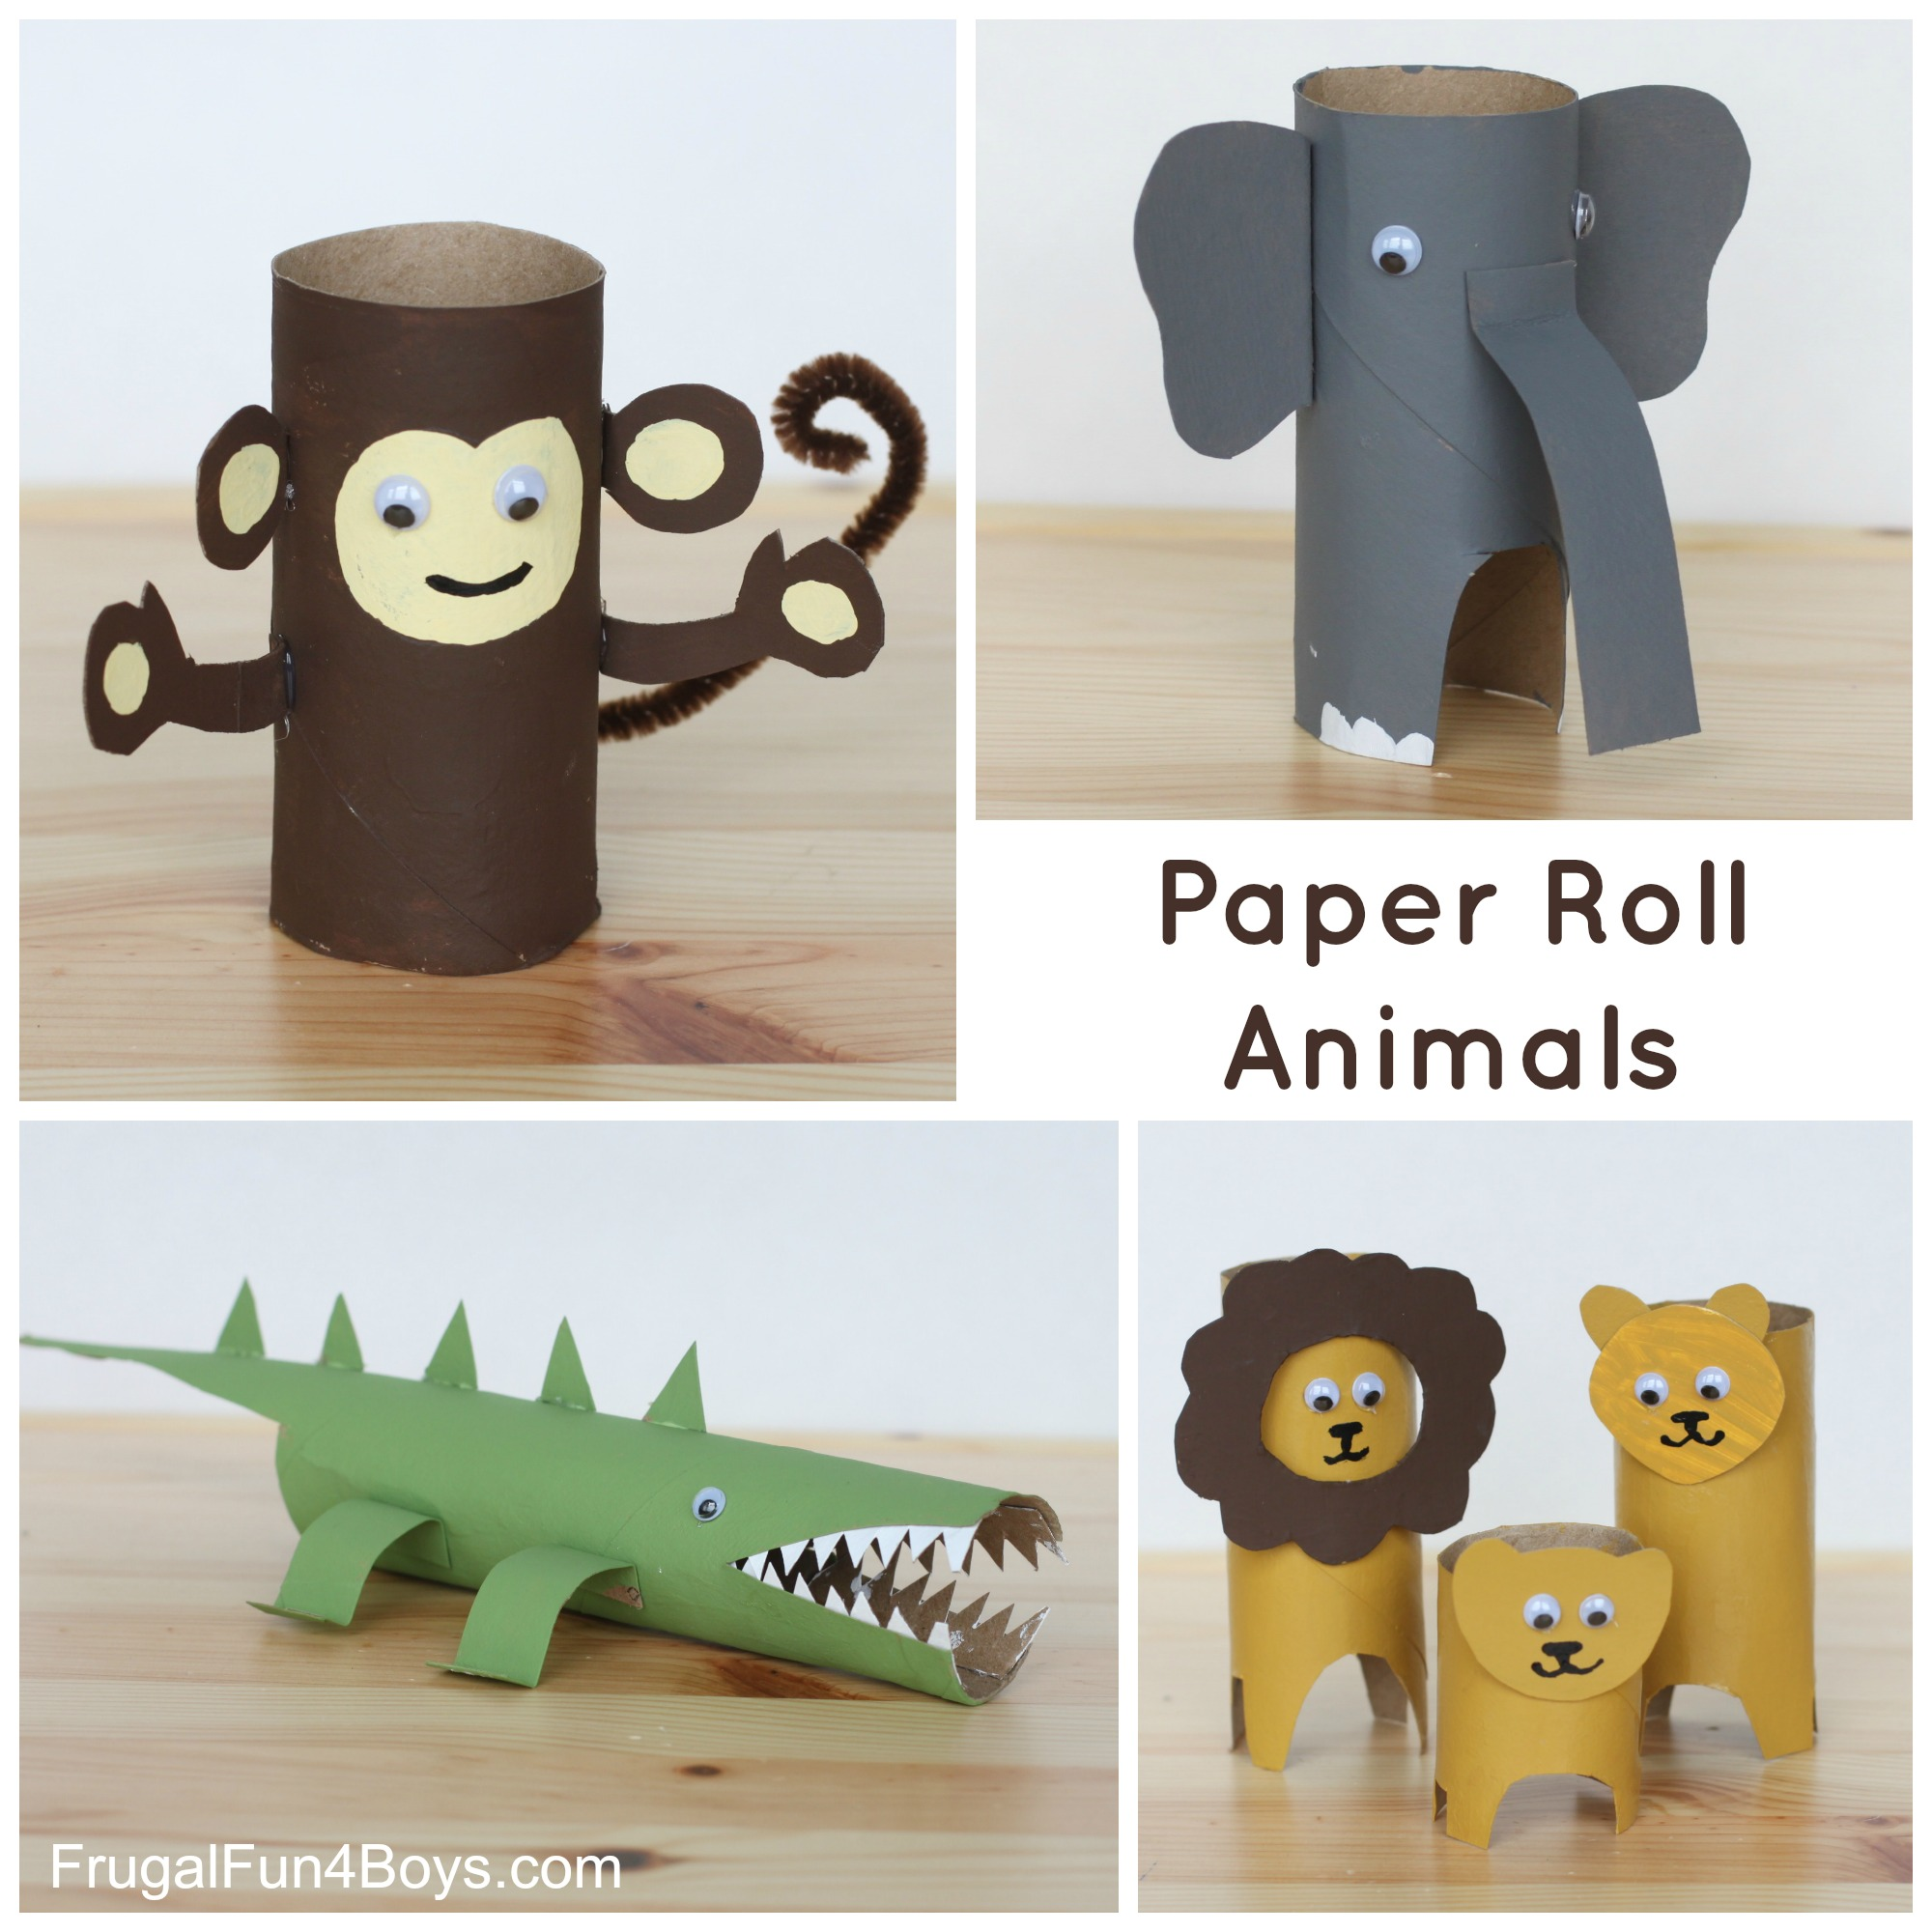 Paper Roll Animals to Make